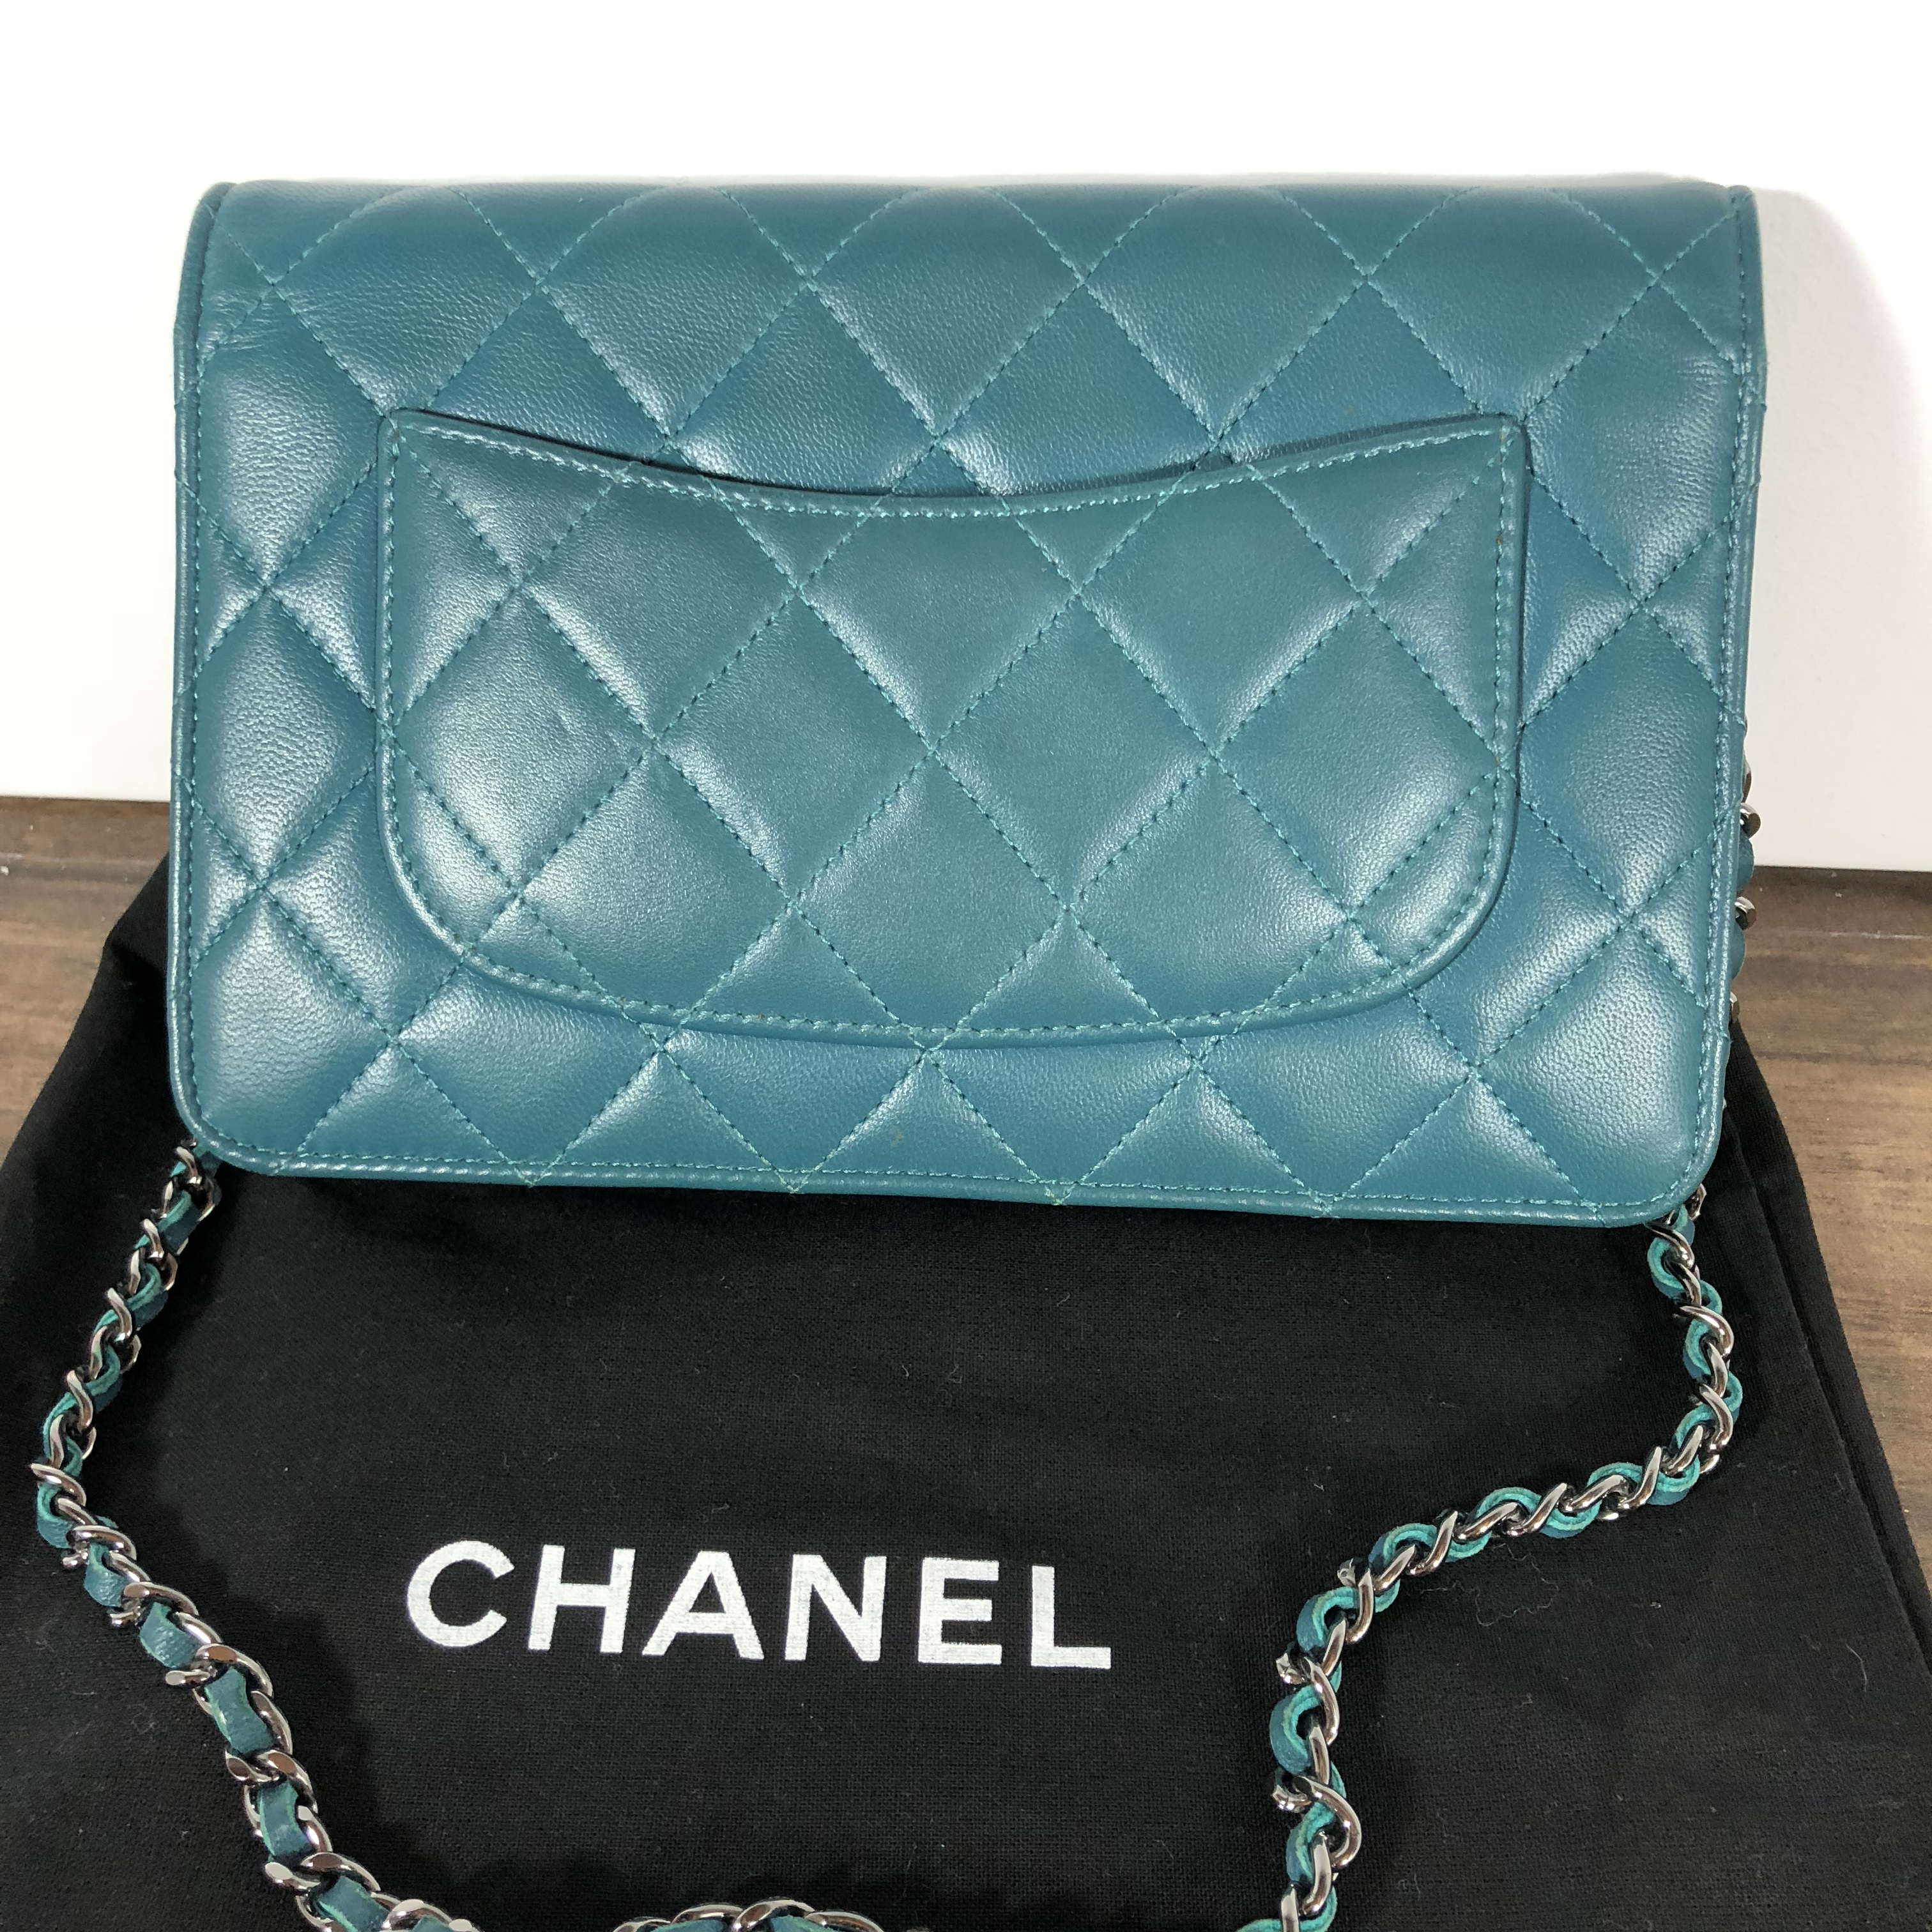 ca3eda8353d6 Chanel Classic Small Wallet Green | Stanford Center for Opportunity ...